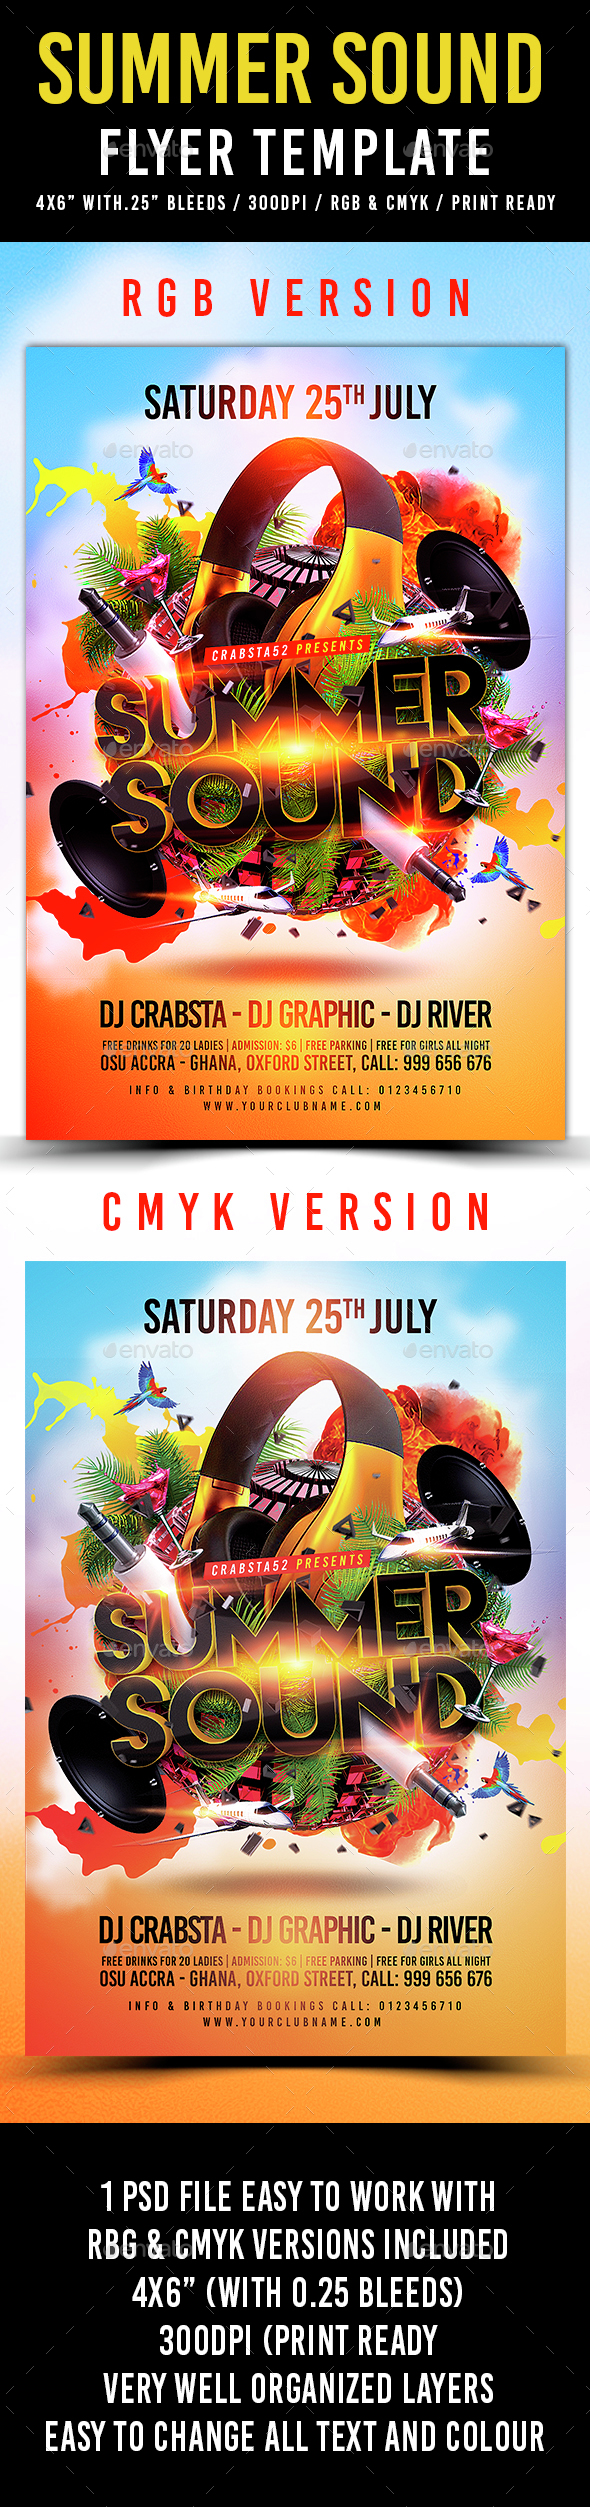 Summer Sound Flyer Template - Clubs & Parties Events